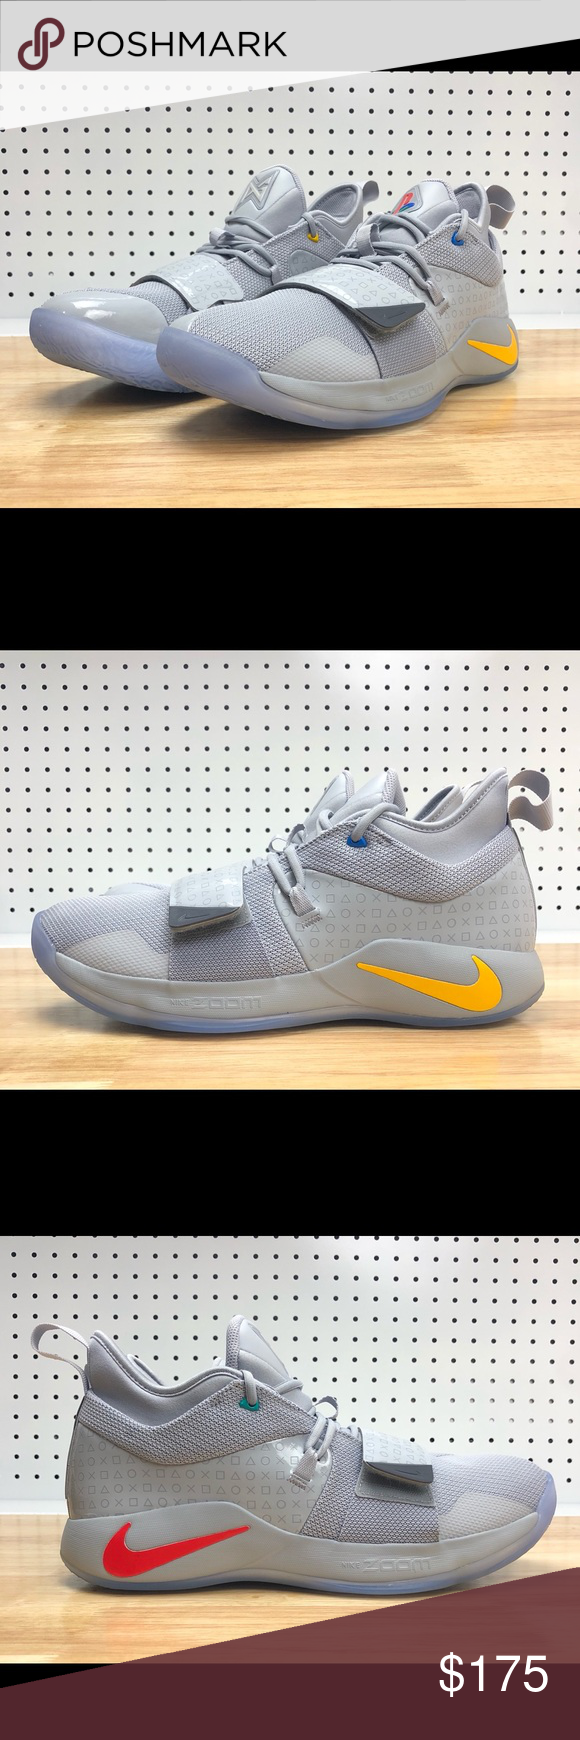 d73022f8db84 PlayStation x PG 2.5 Wolf Grey Paul George Shoes PlayStation x PG 2.5  Wolf  Grey